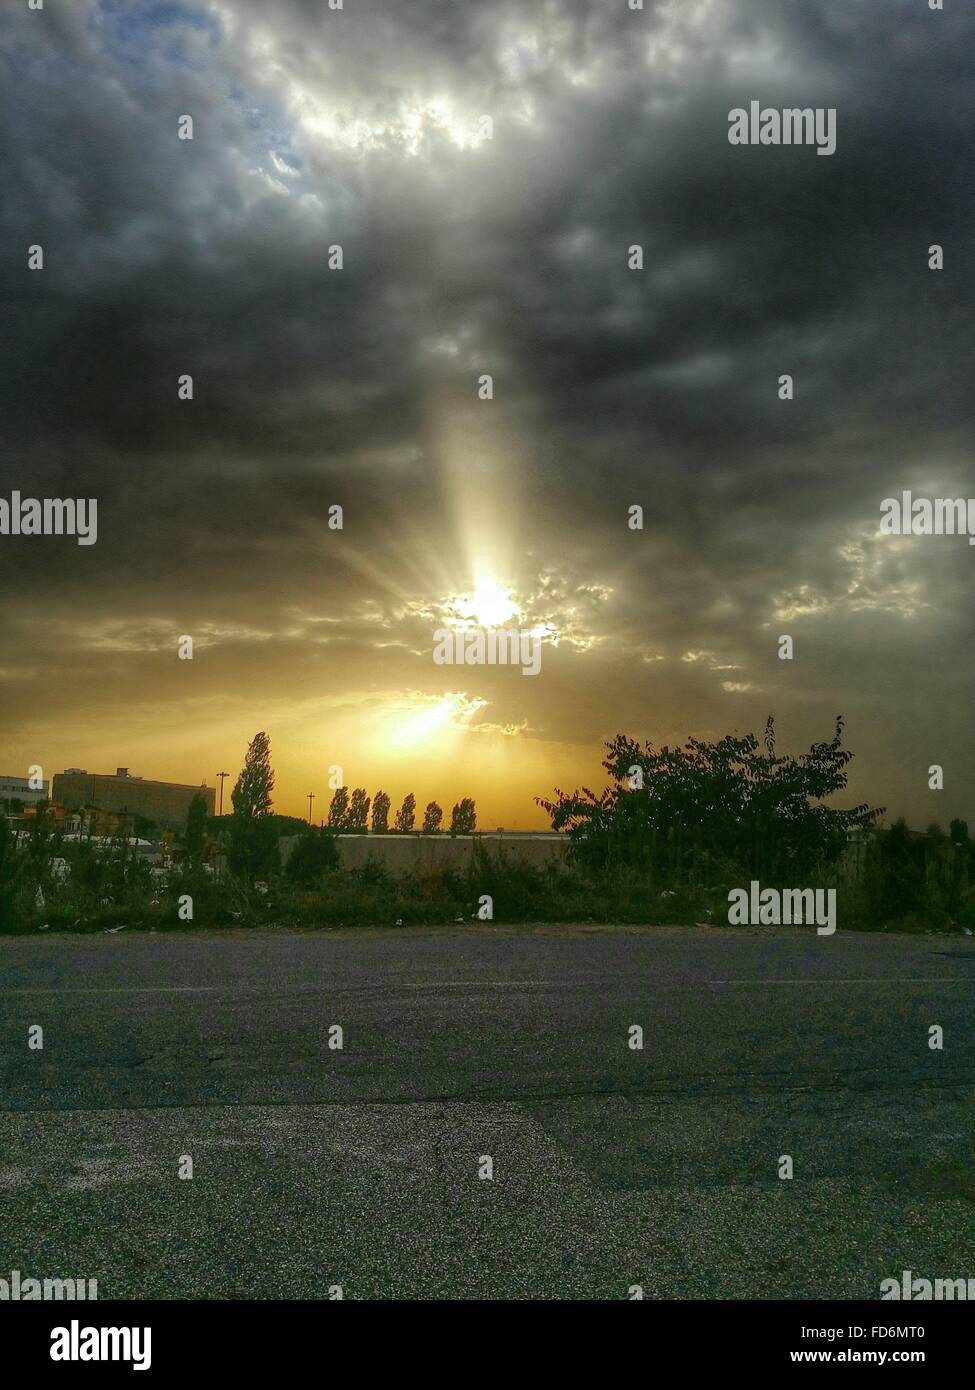 Dramatic Sky Over City - Stock Image